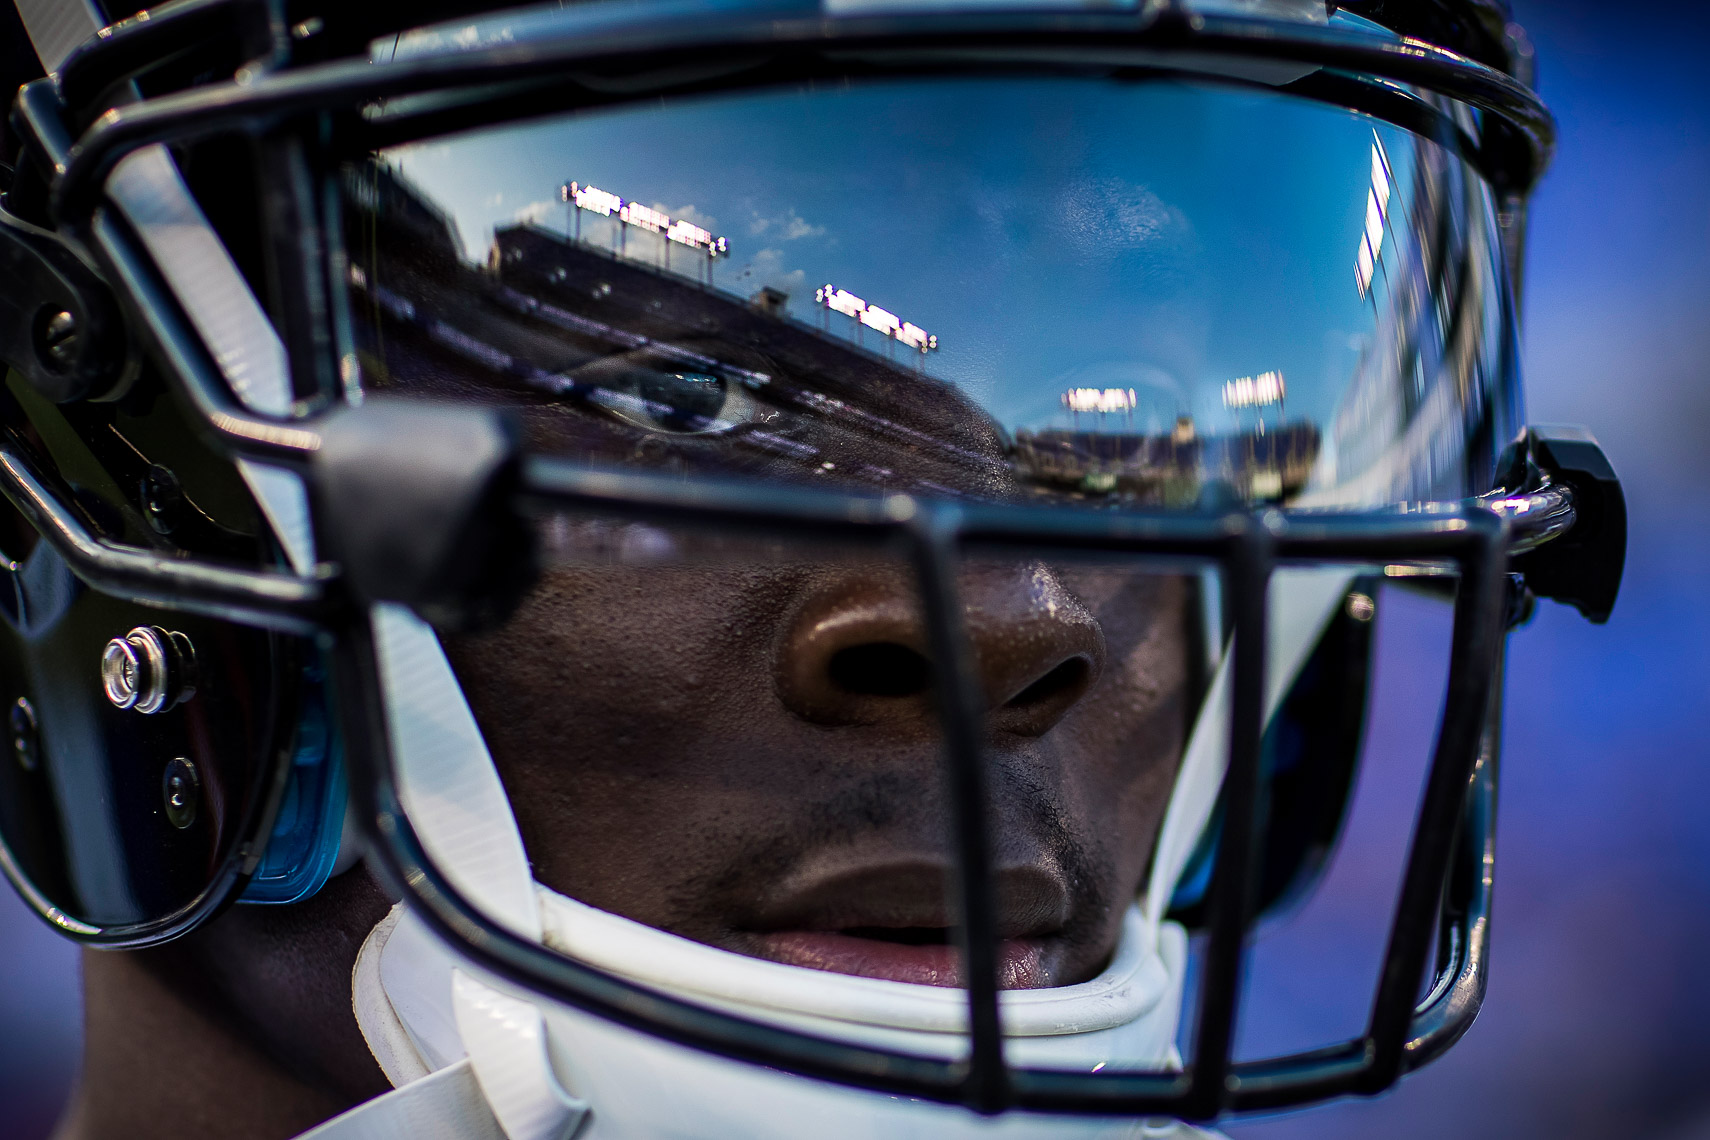 ravens04  NFL Baltimore Ravens photos NFL behind the scenes documentary sports photographer photo of receiver Jeremy Maclin